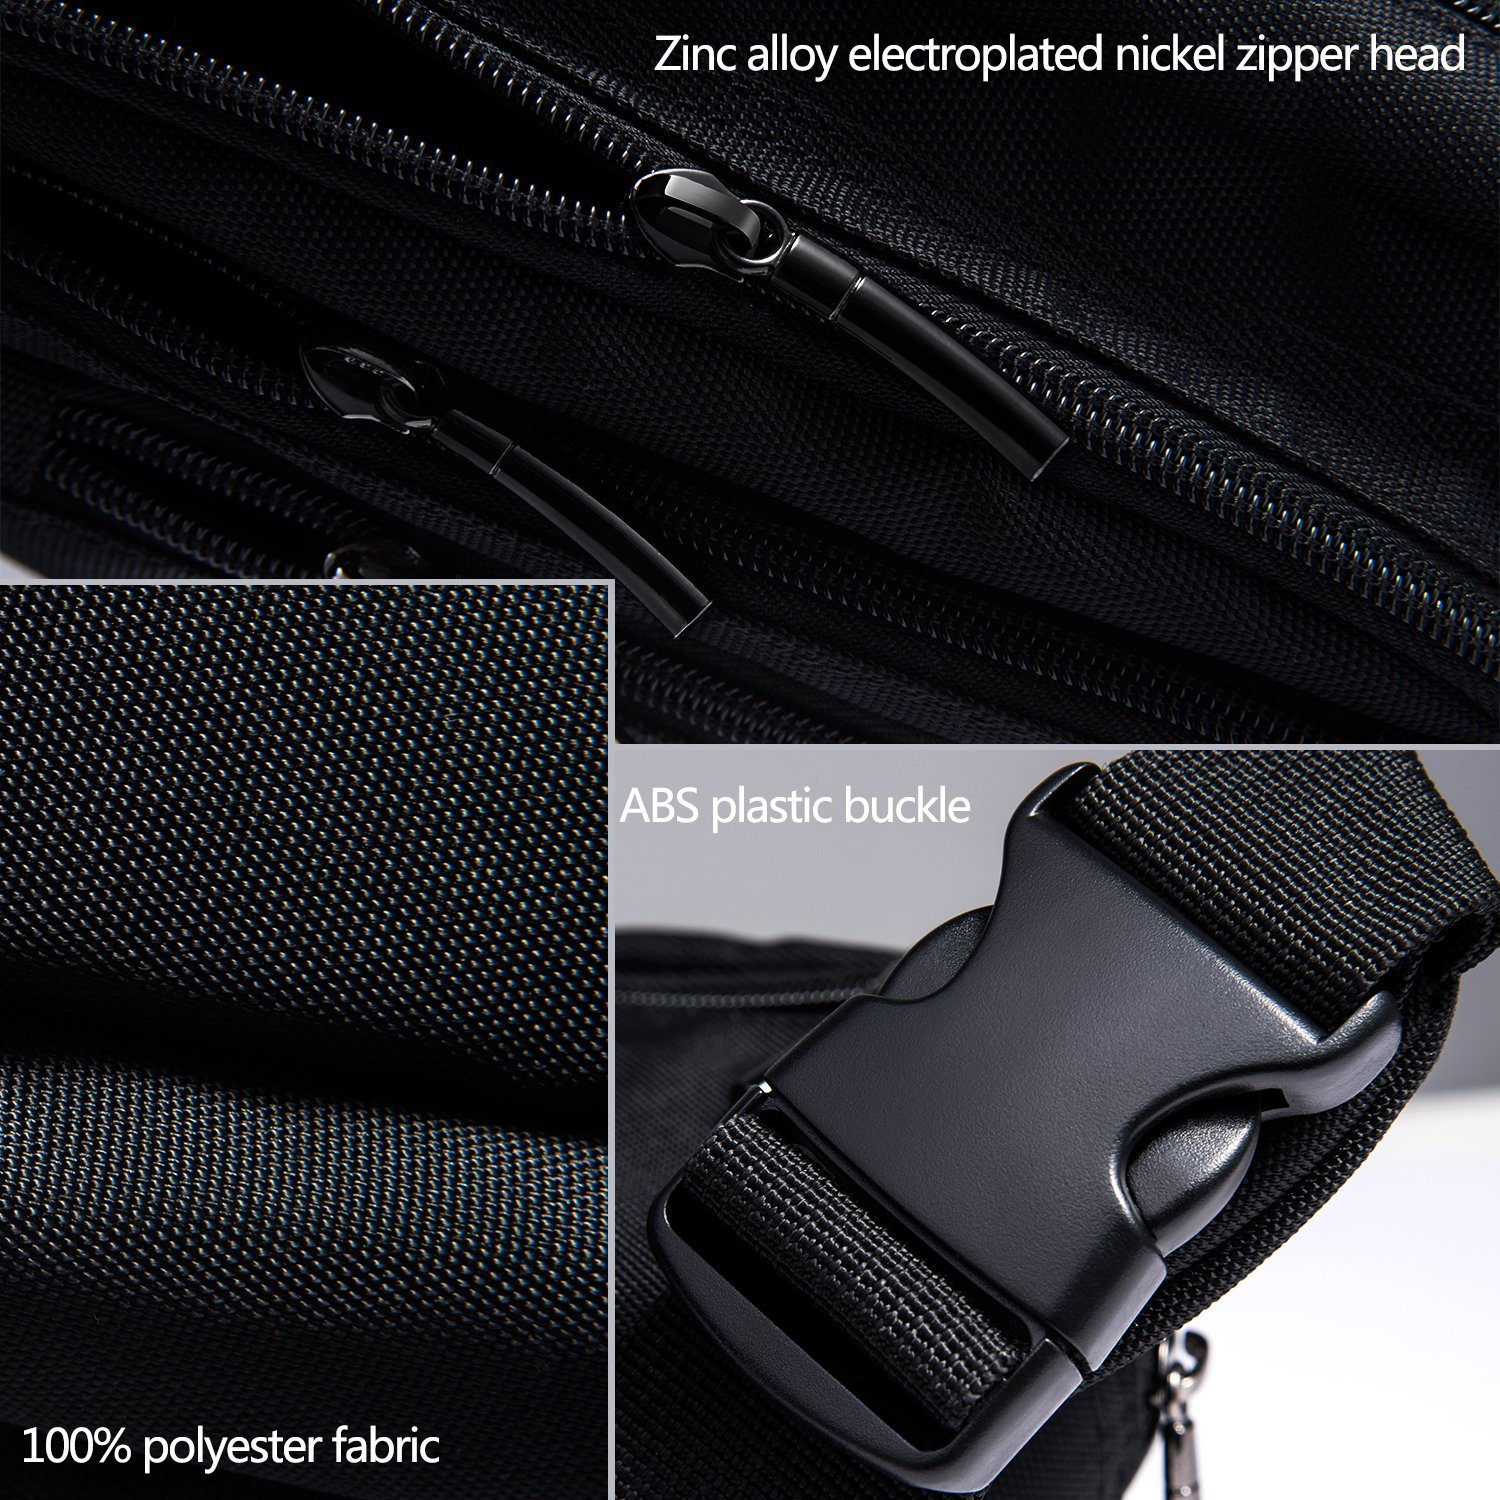 304ed914182 FREETOO Waist Pack Bag Fanny Pack for Men&Women Hip Bum Bag with ...